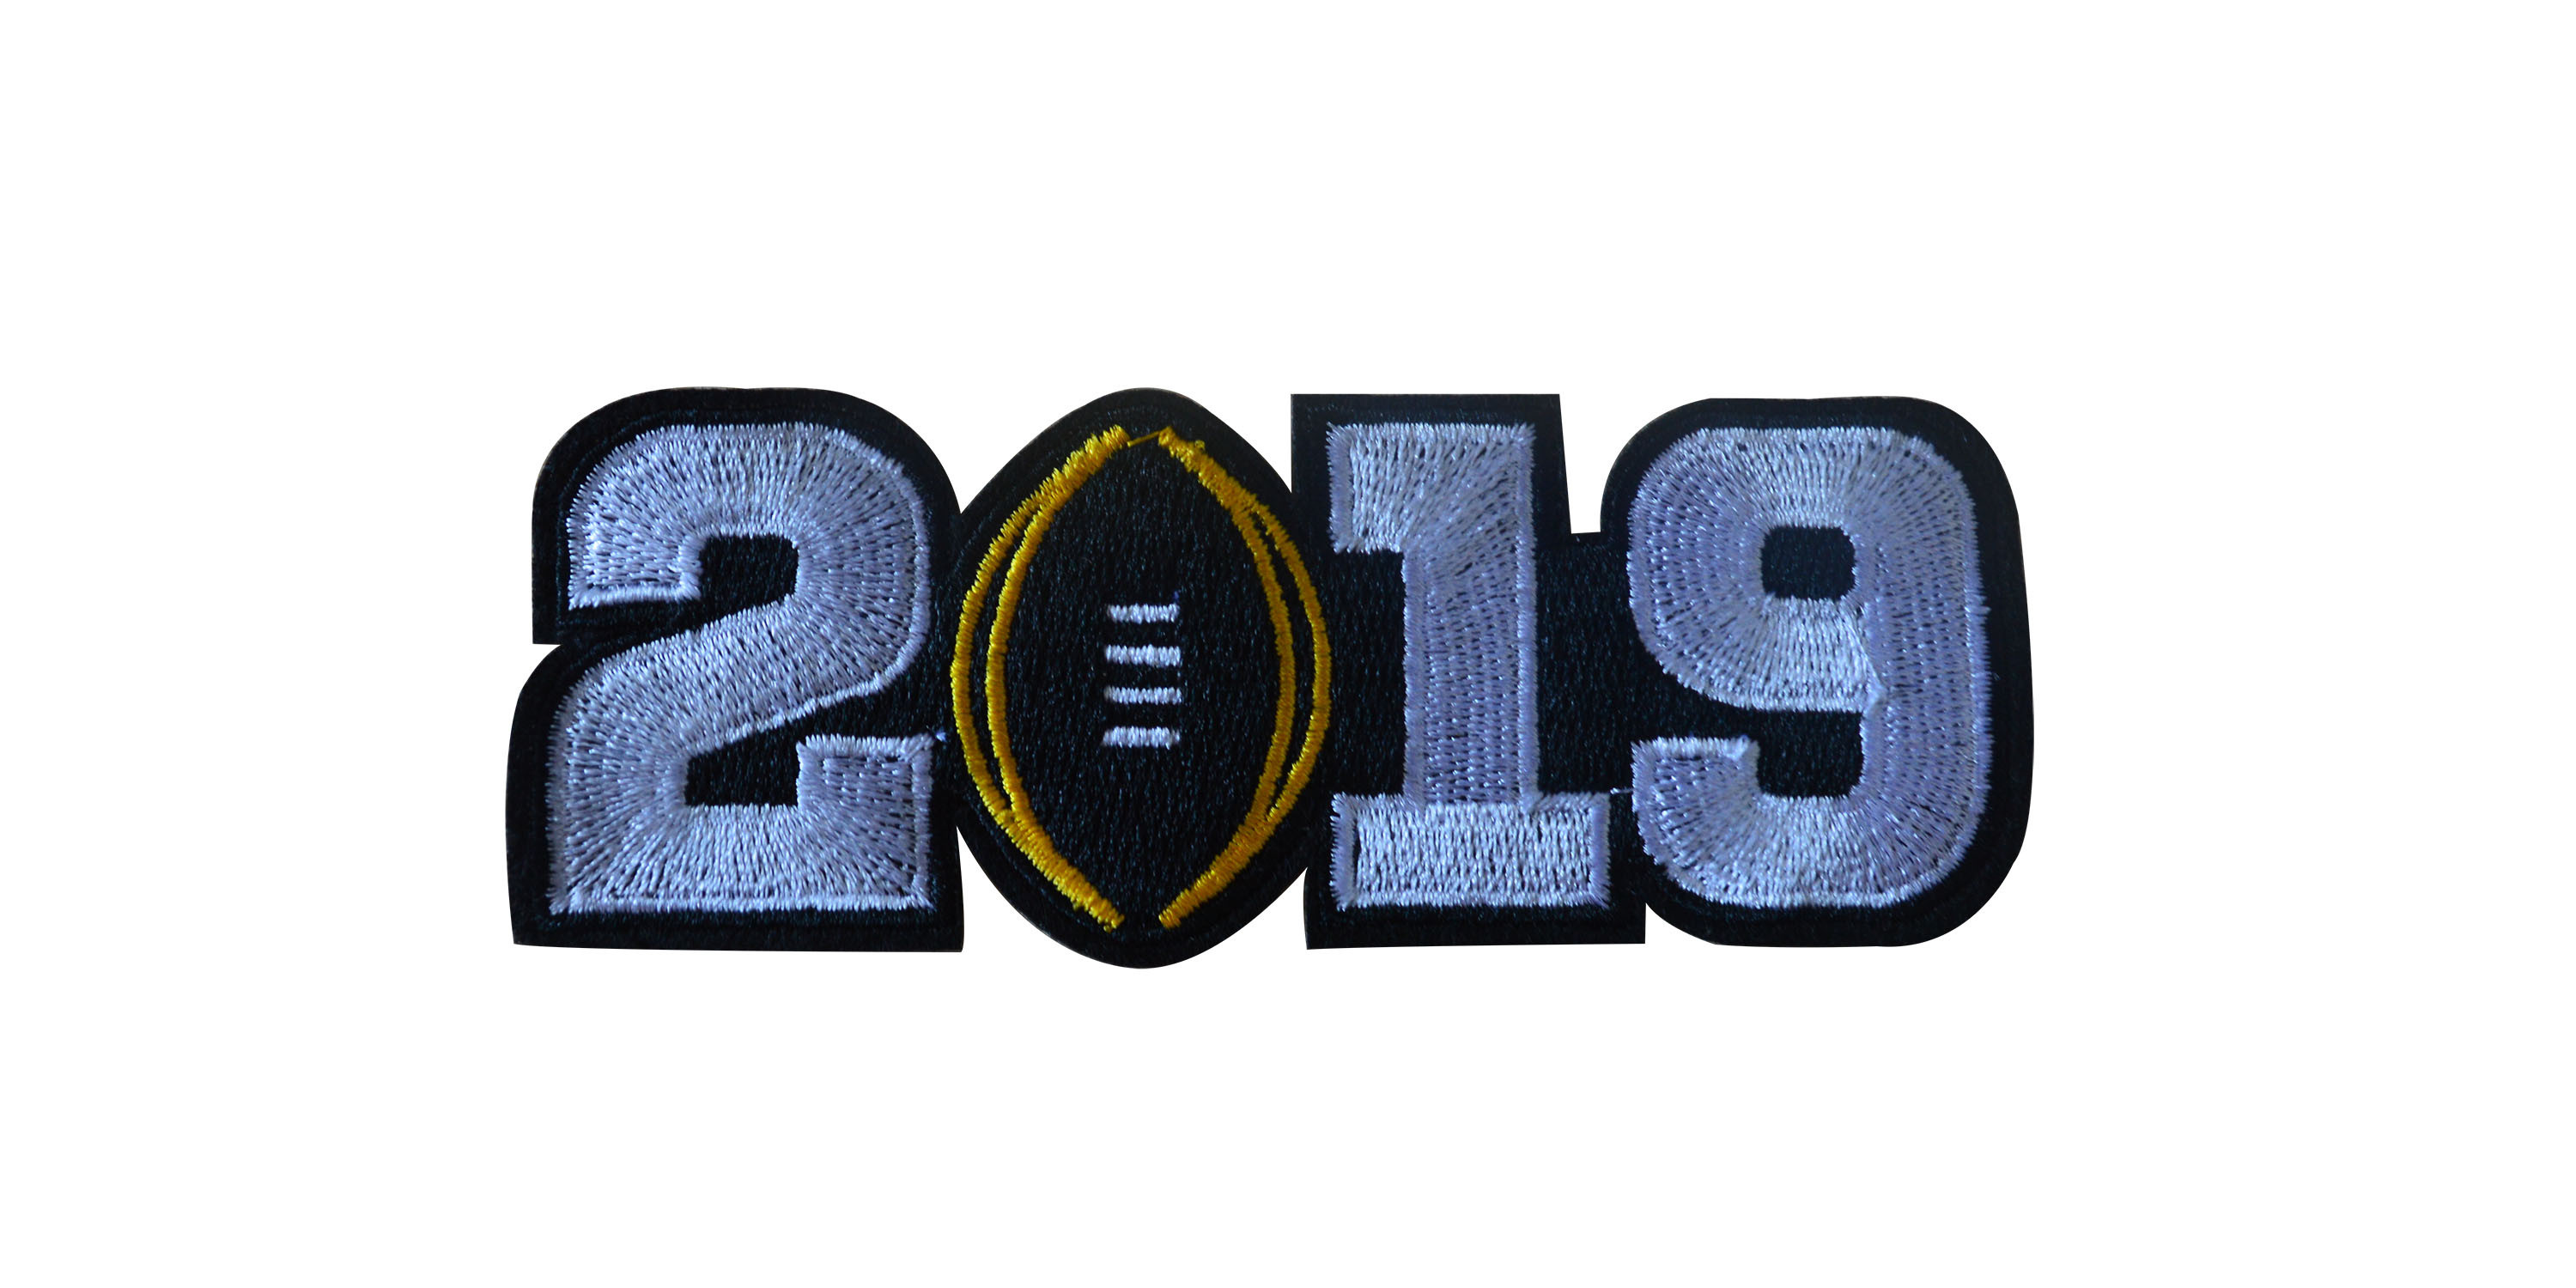 2019 College Football Playoff National Championship Patch White(Worn By Alabama)